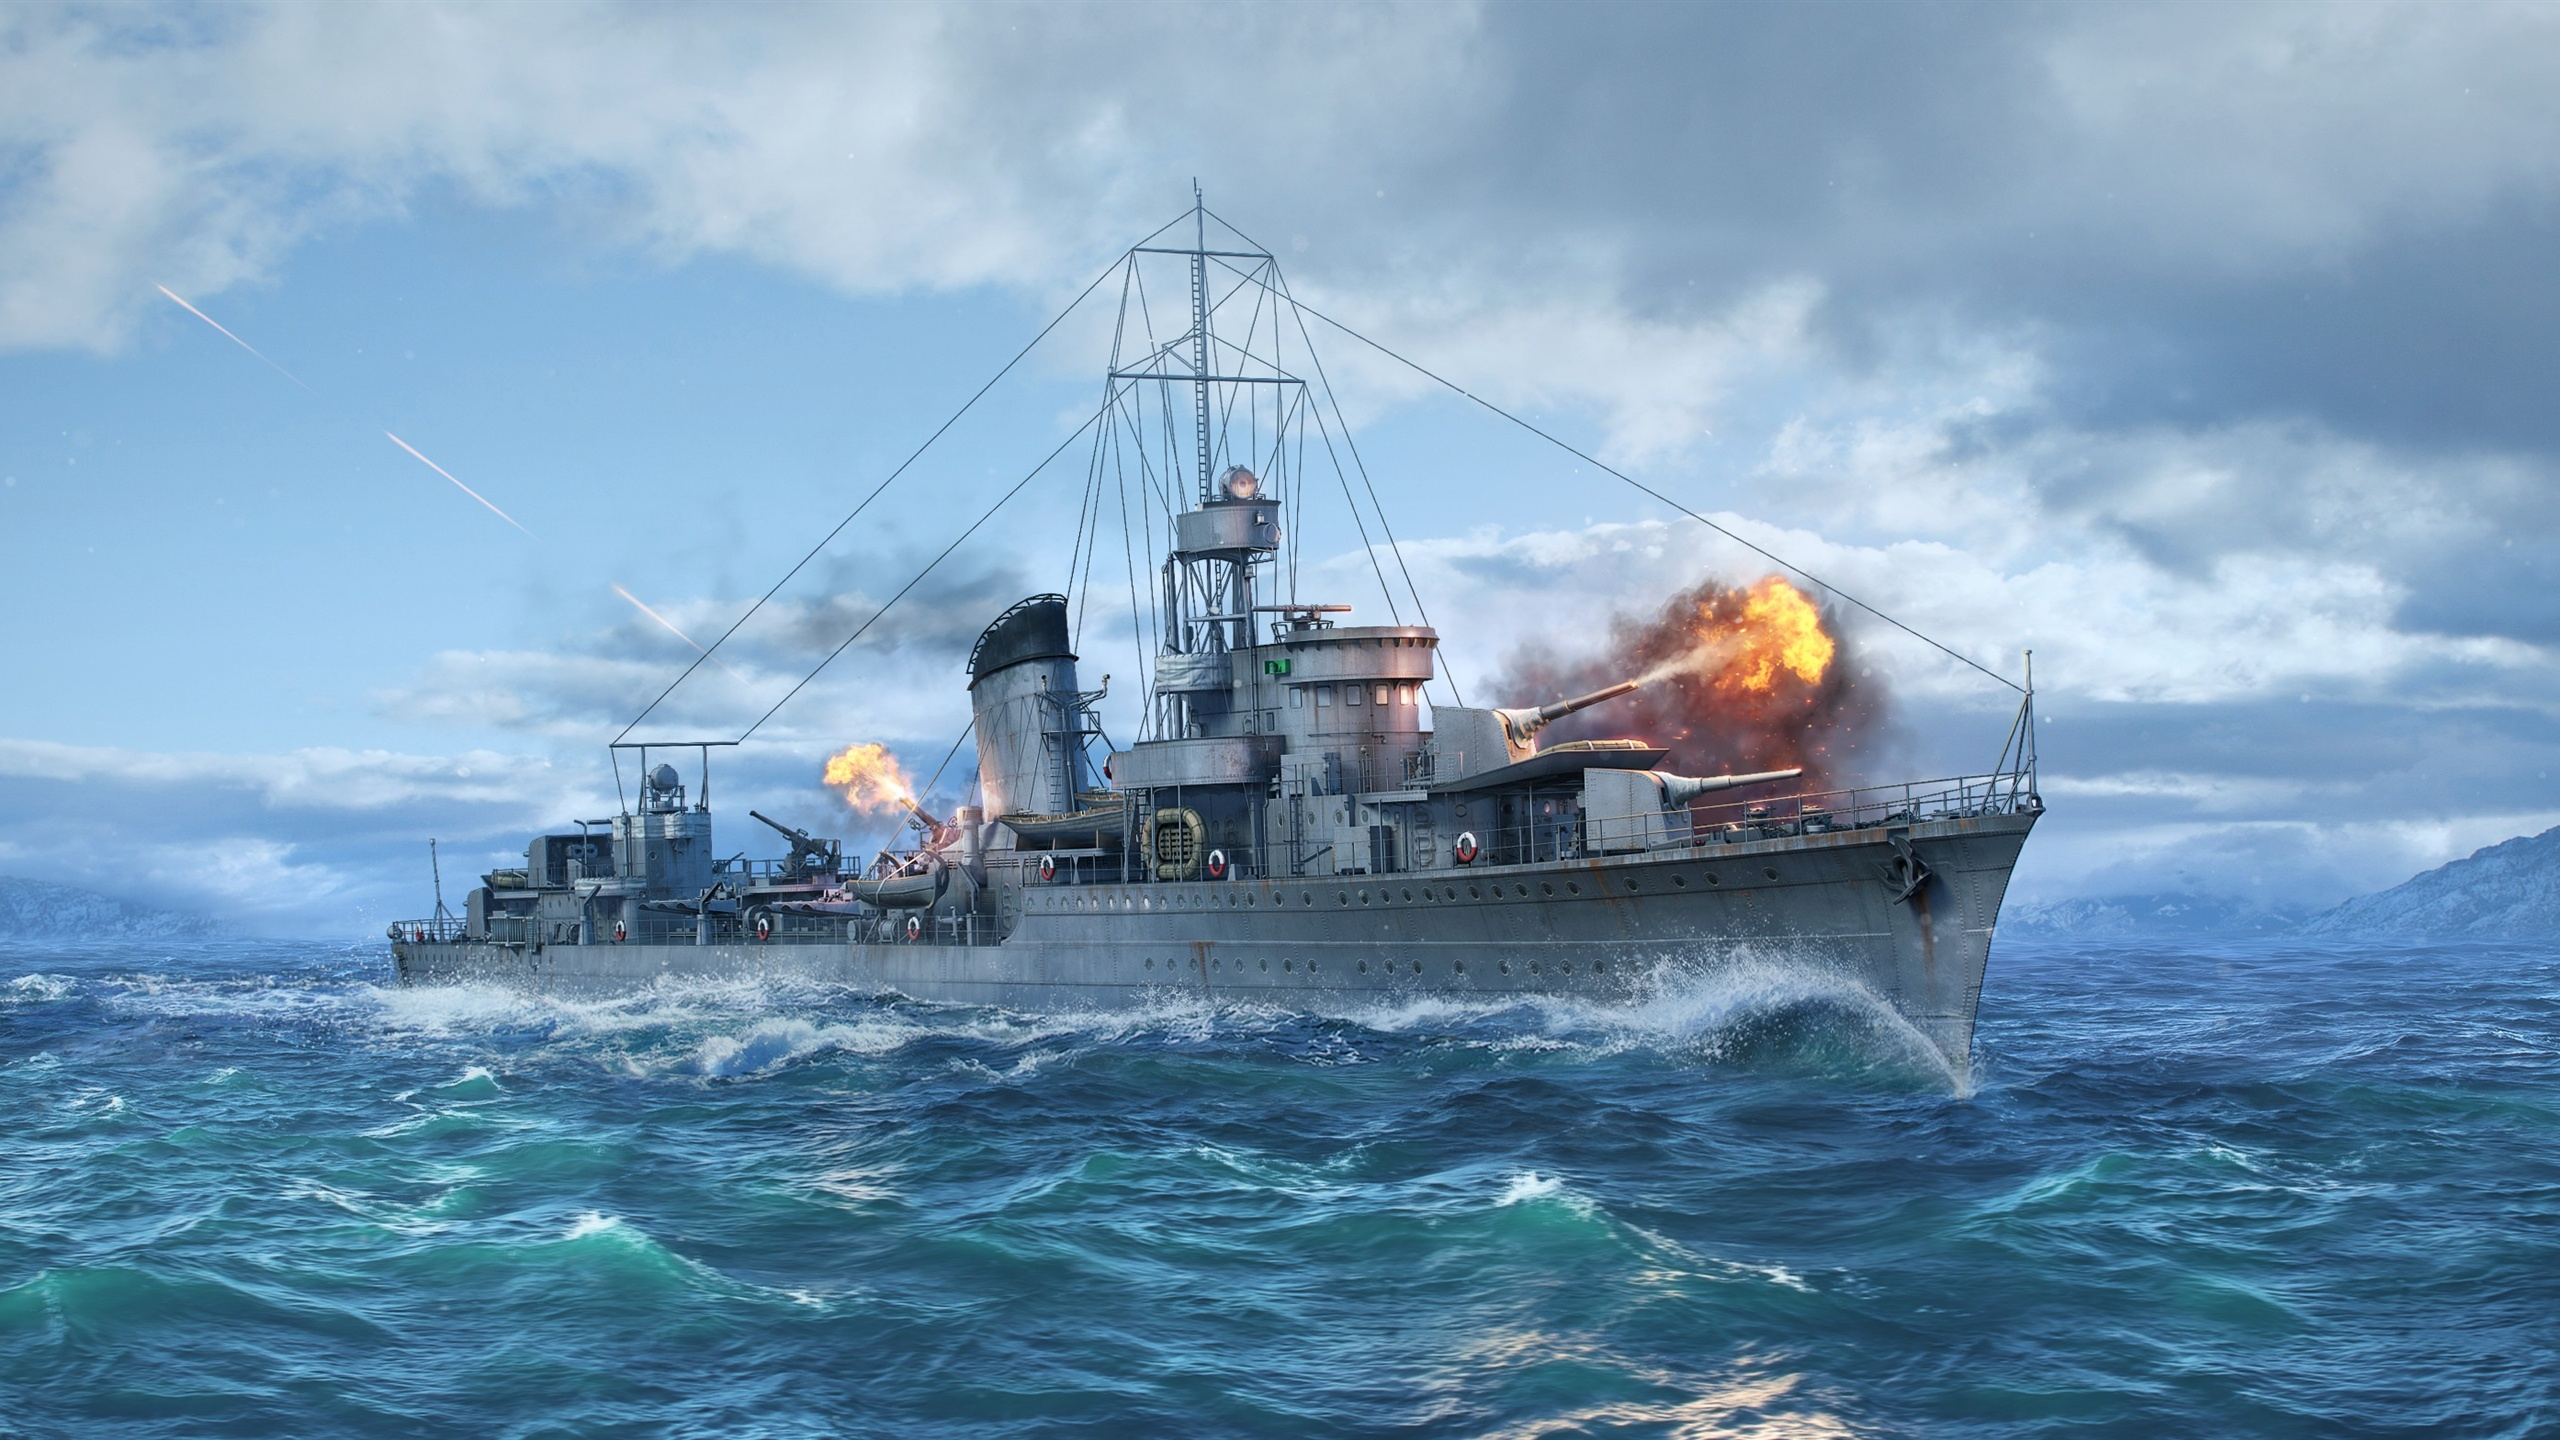 Wallpaper World Of Warships Destroy Sea Ship 2560x1600 Hd